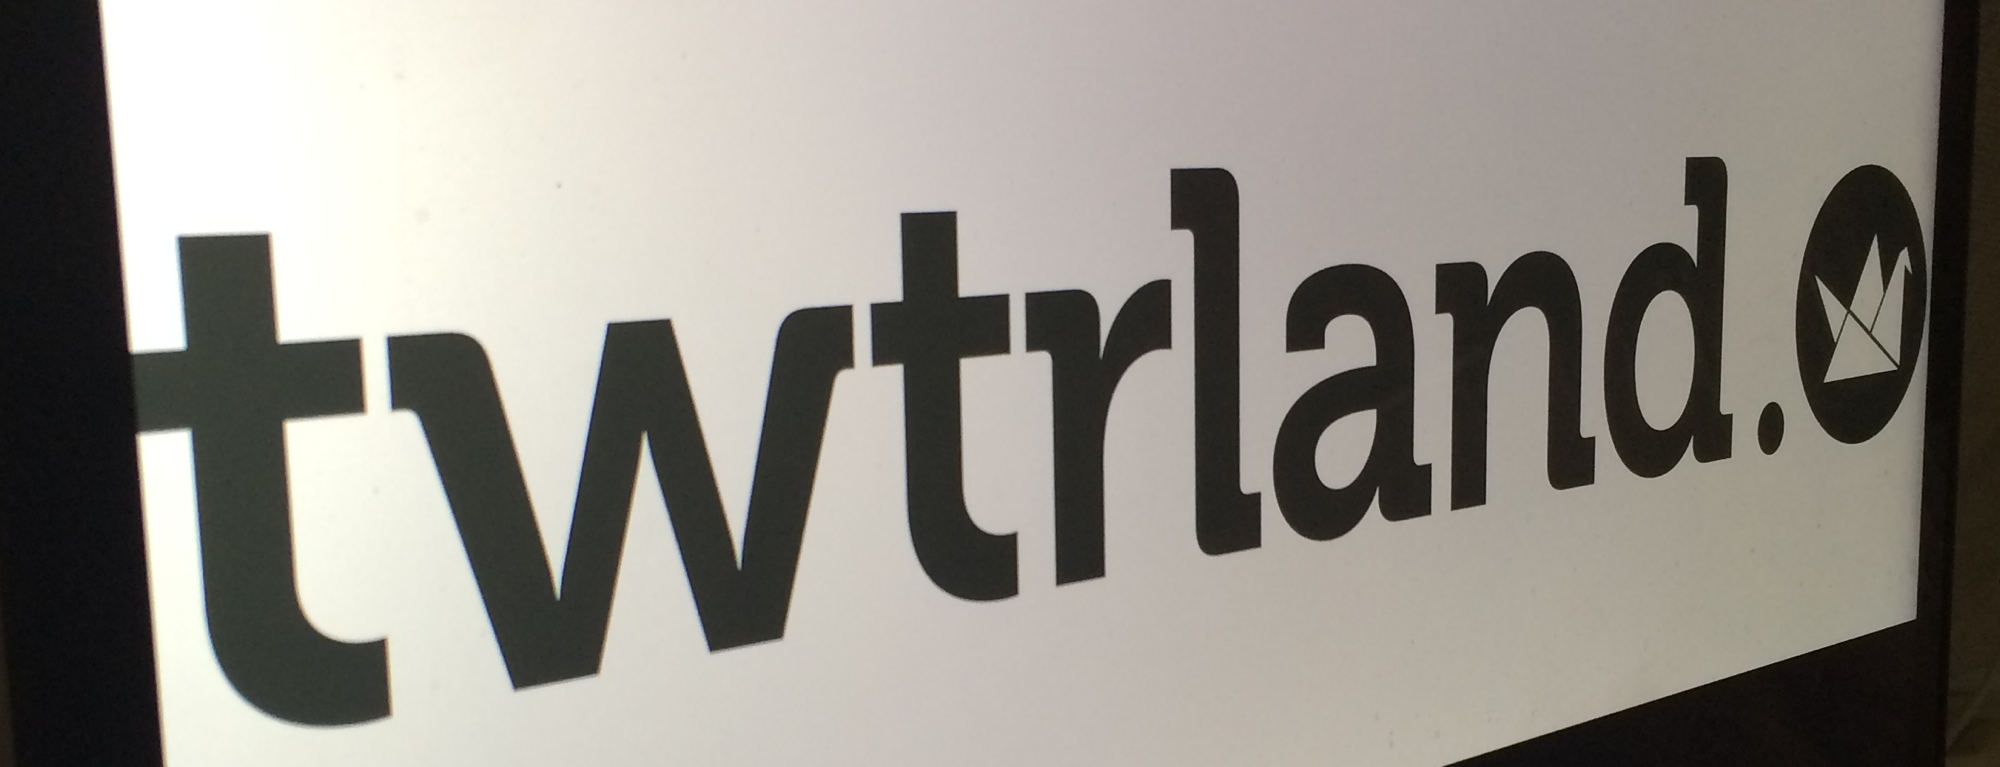 Twtrland Launches Social Data Toolset for Businesses